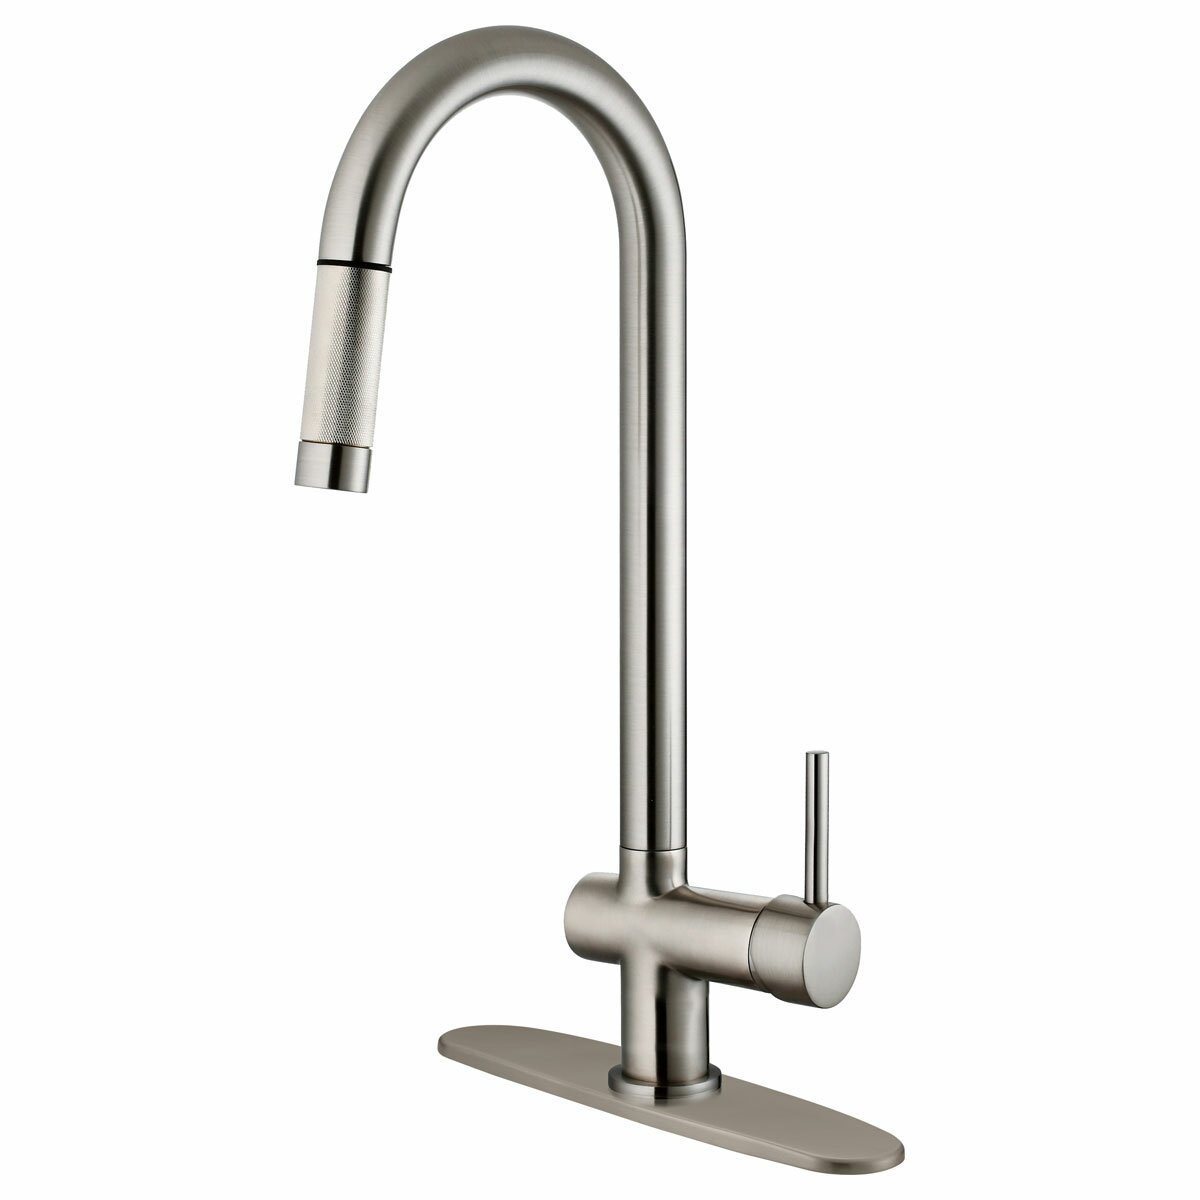 single handle pull down kitchen faucet lesscare single handle pull kitchen faucet amp reviews 27459